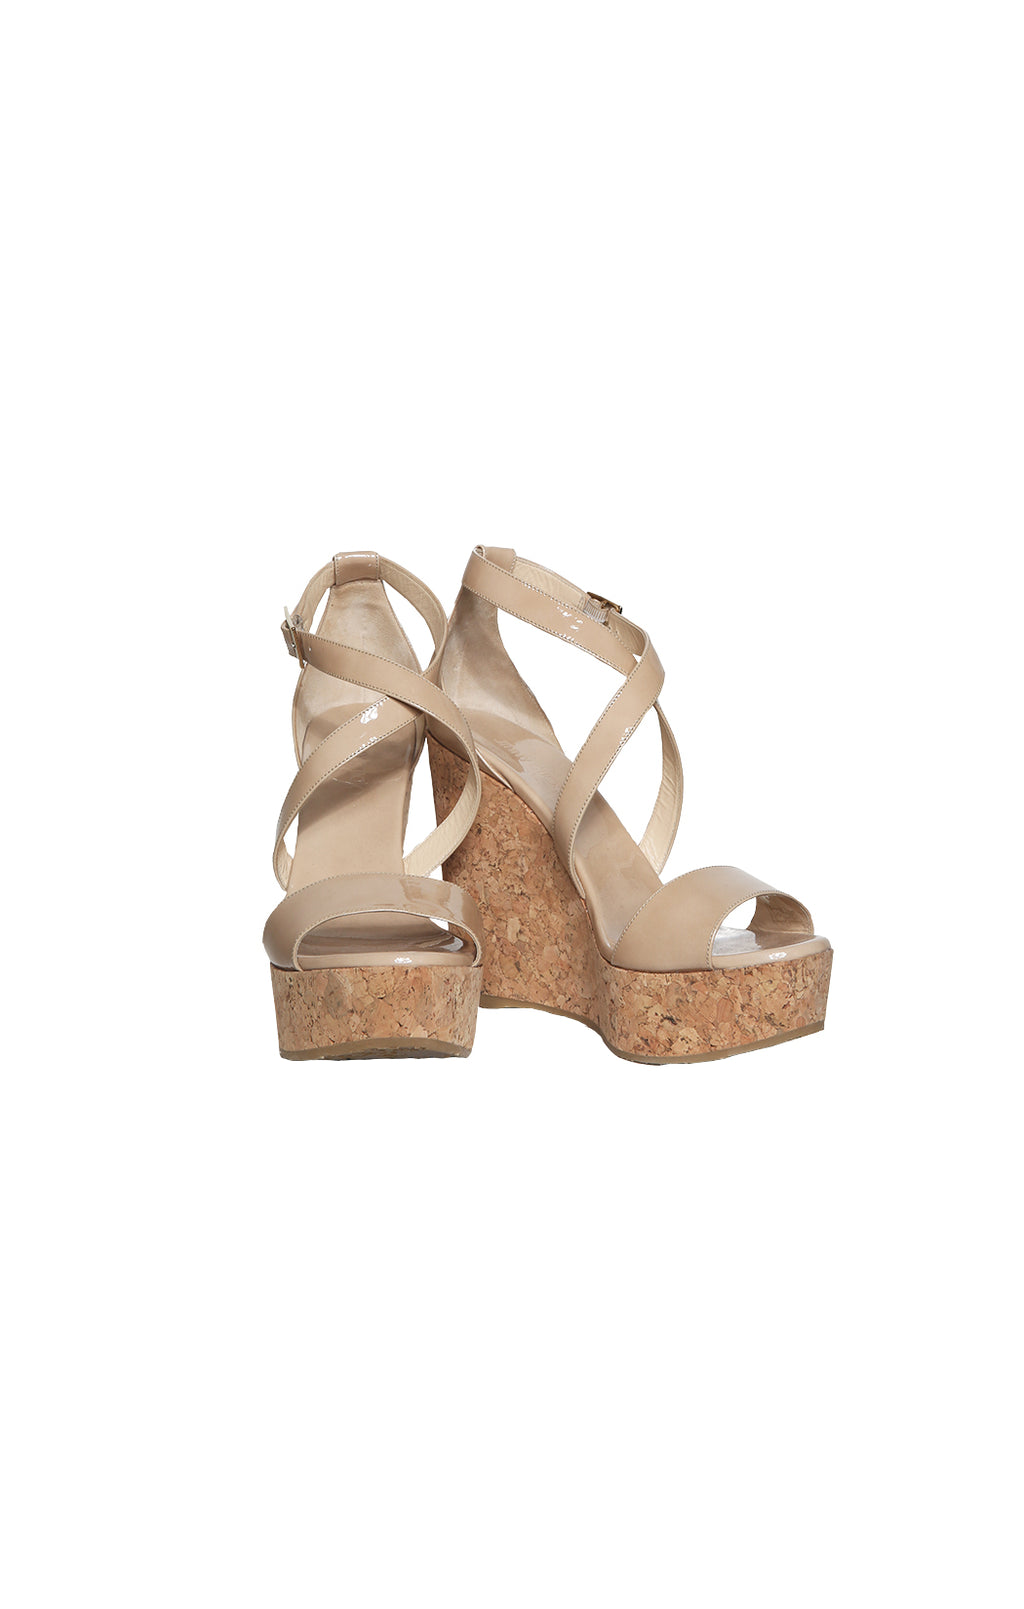 Front view of JIMMY CHOO Wedges Size: 39 (US 9)